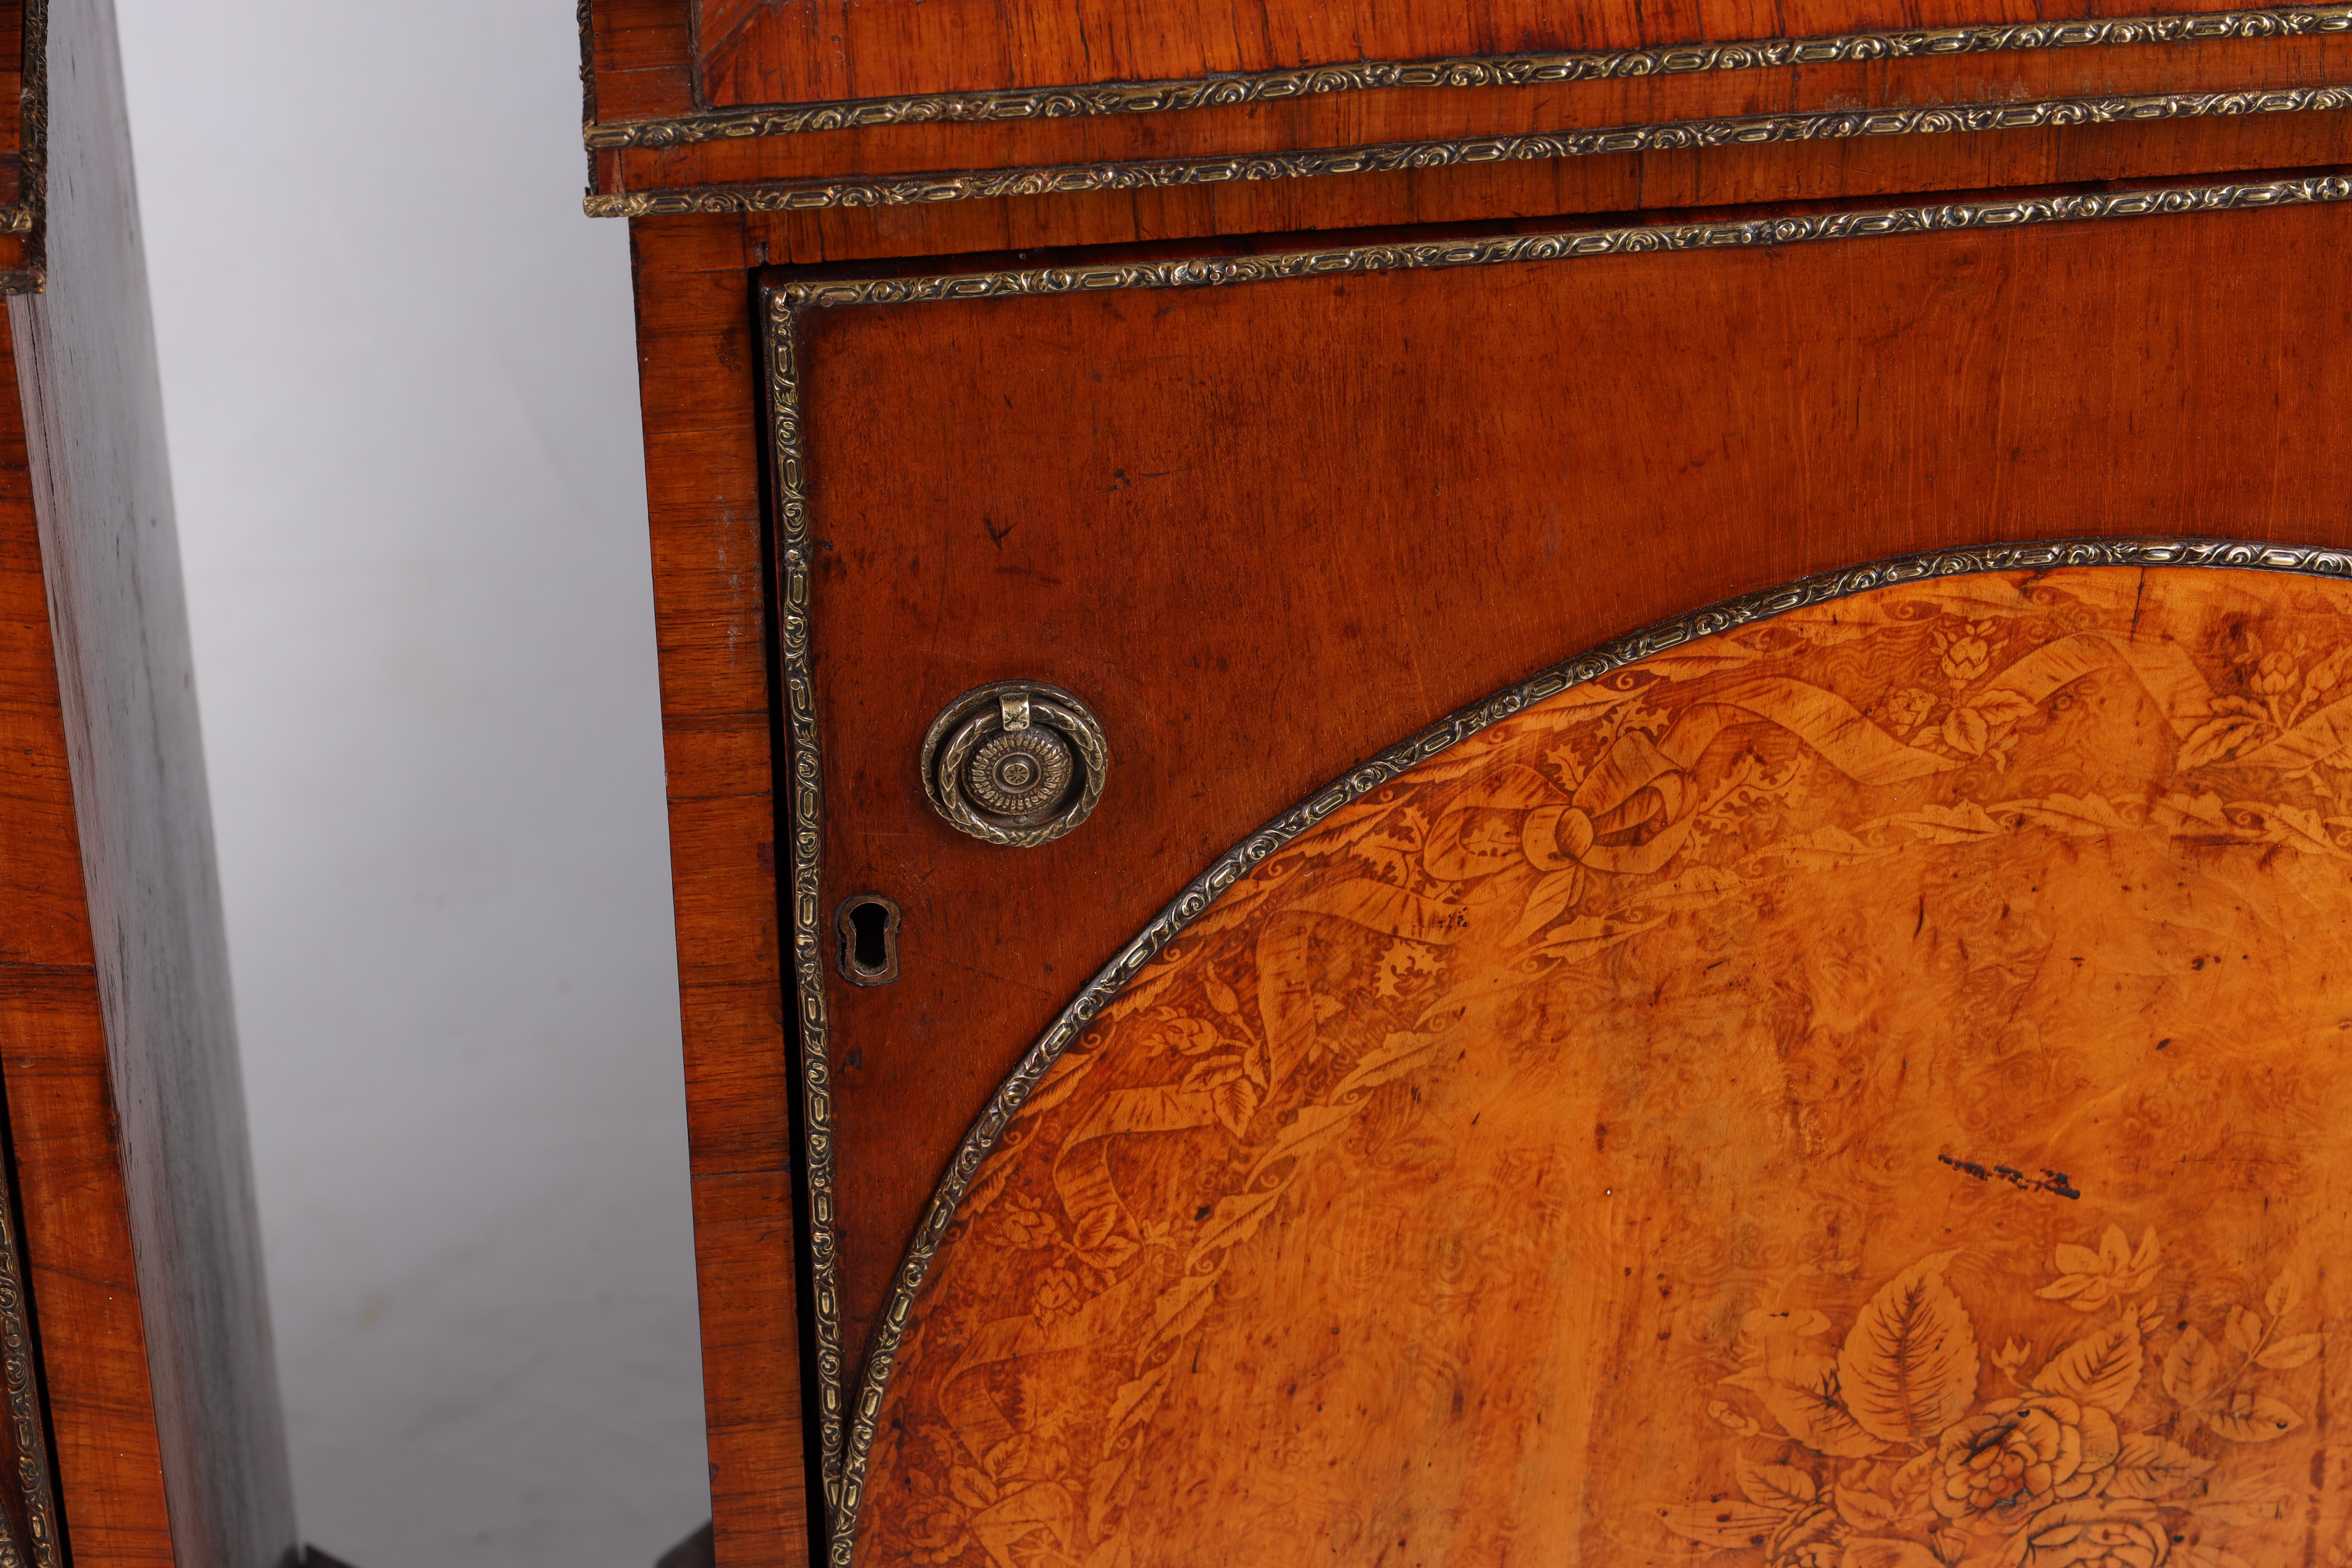 A LARGE PAIR OF GEORGE III KINGWOOD BANDED MAHOGANY PEDESTALS with unusual pen work panels depicting - Image 5 of 11